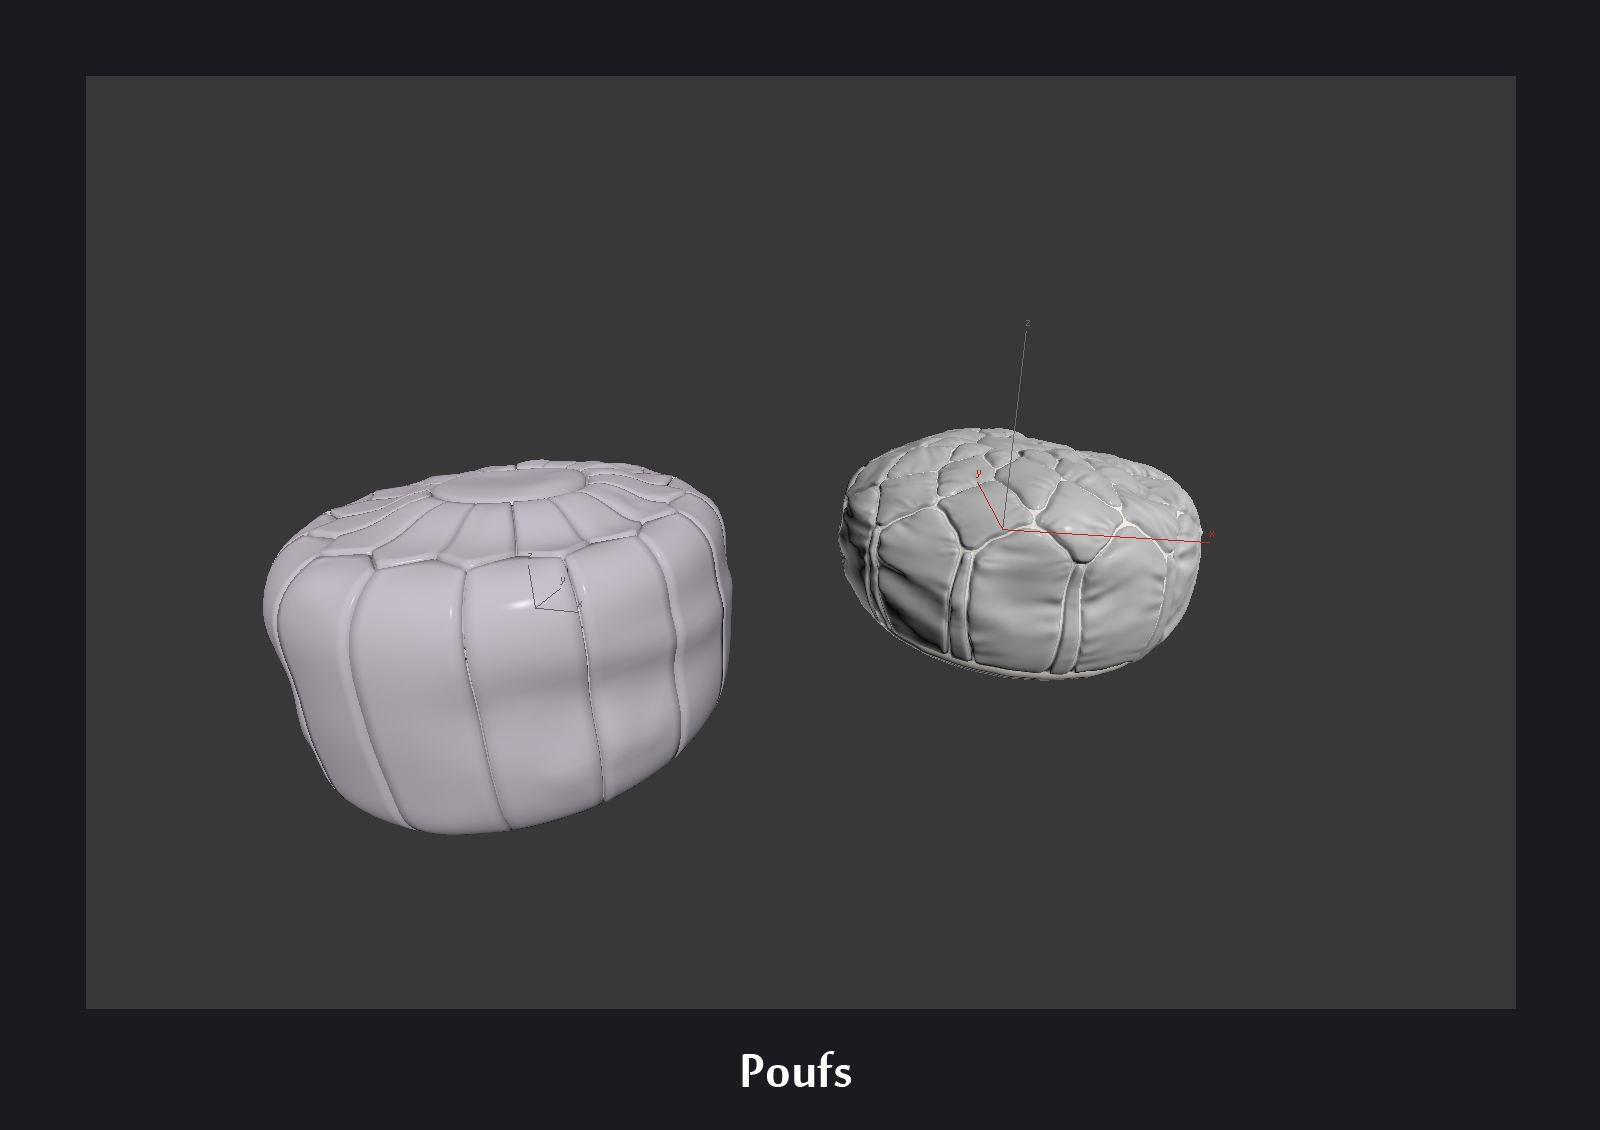 016_poufs_evermotion_052.jpg